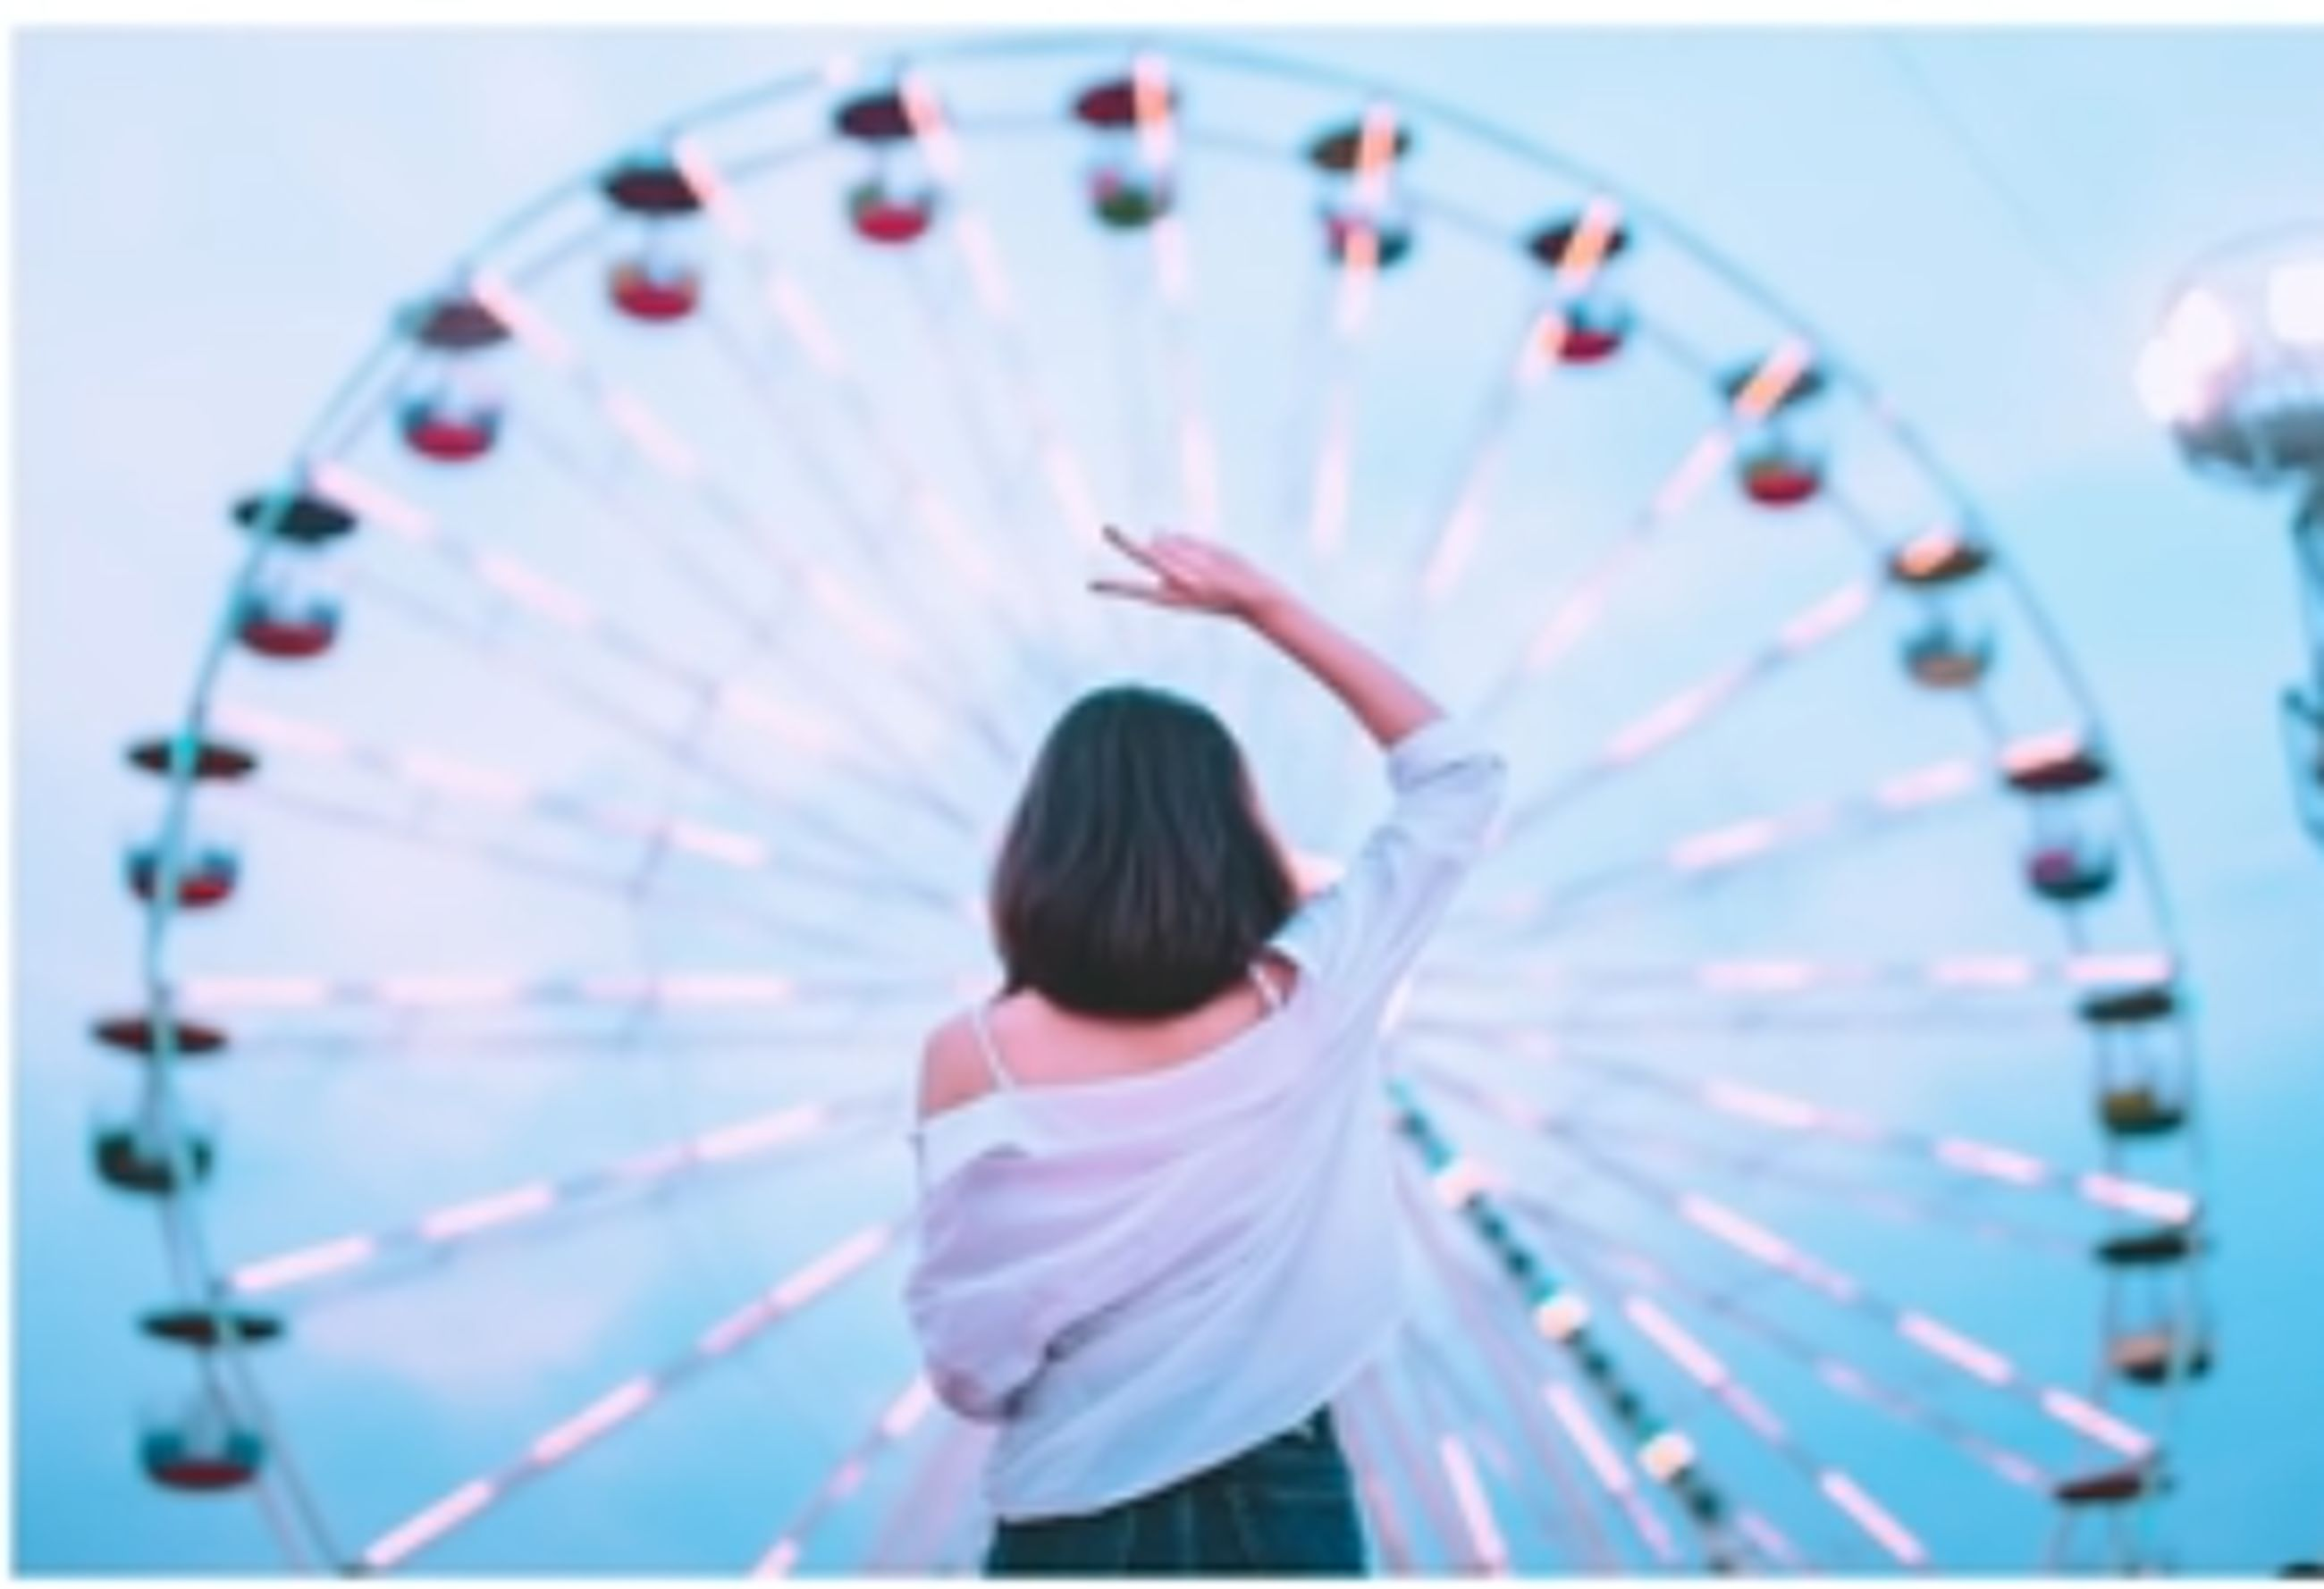 rear view, leisure activity, real people, one person, amusement park, amusement park ride, ferris wheel, women, lifestyles, casual clothing, arts culture and entertainment, enjoyment, standing, nature, adult, outdoors, focus on foreground, child, hairstyle